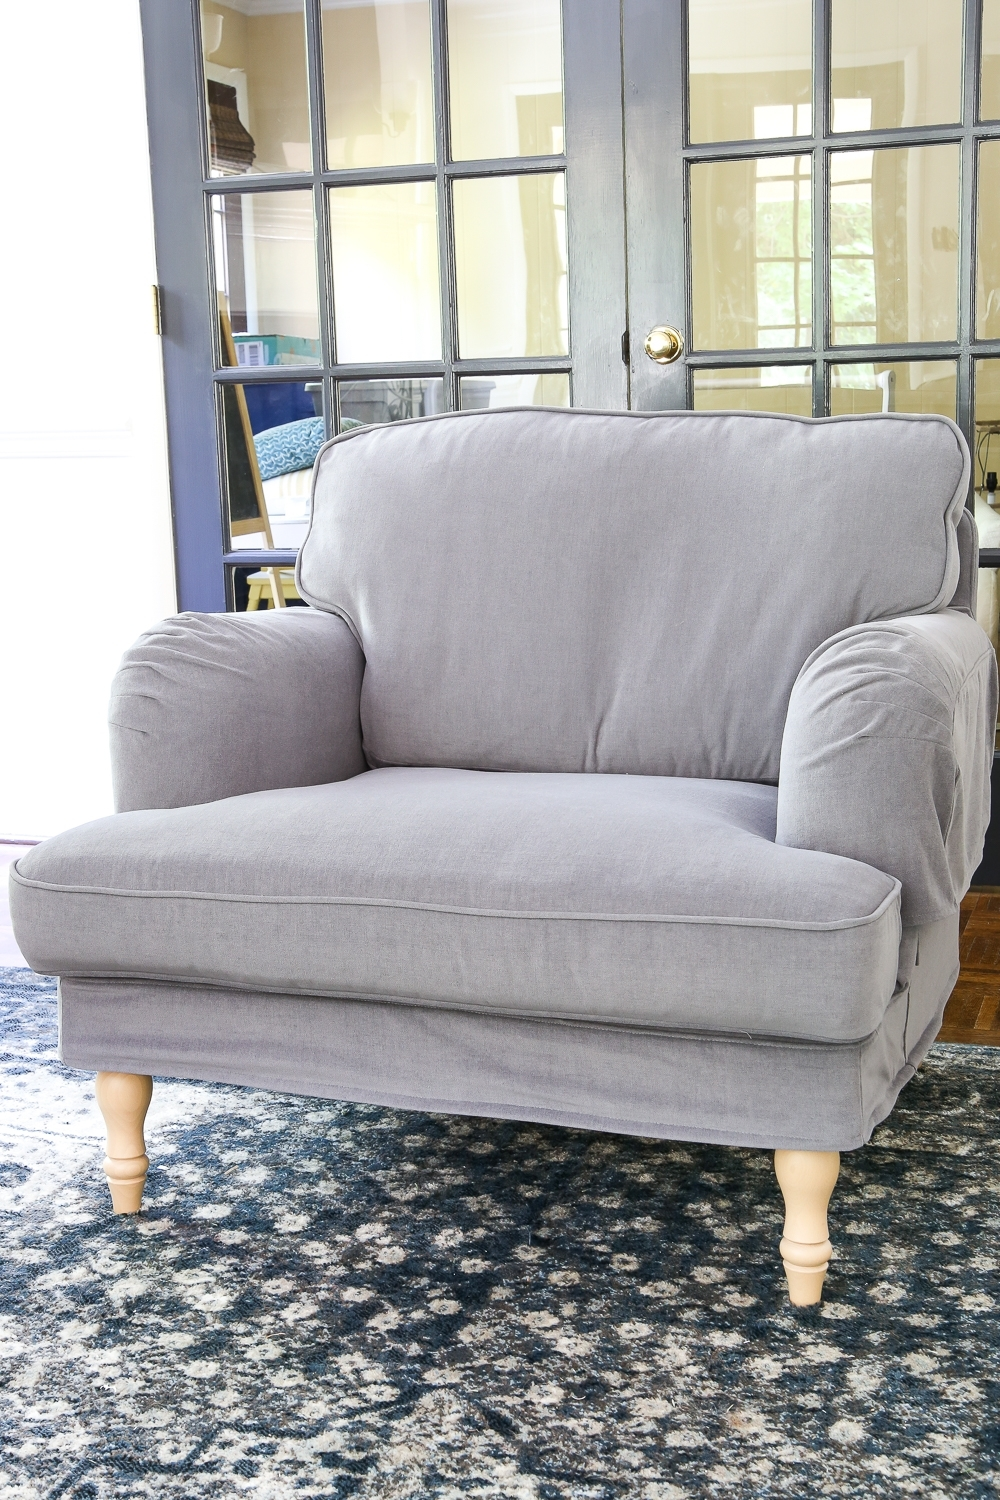 Ikea's New Sofa And Chairs And How To Keep Them Clean – Bless'er House For Well Liked Comfortable Sofas And Chairs (View 7 of 20)